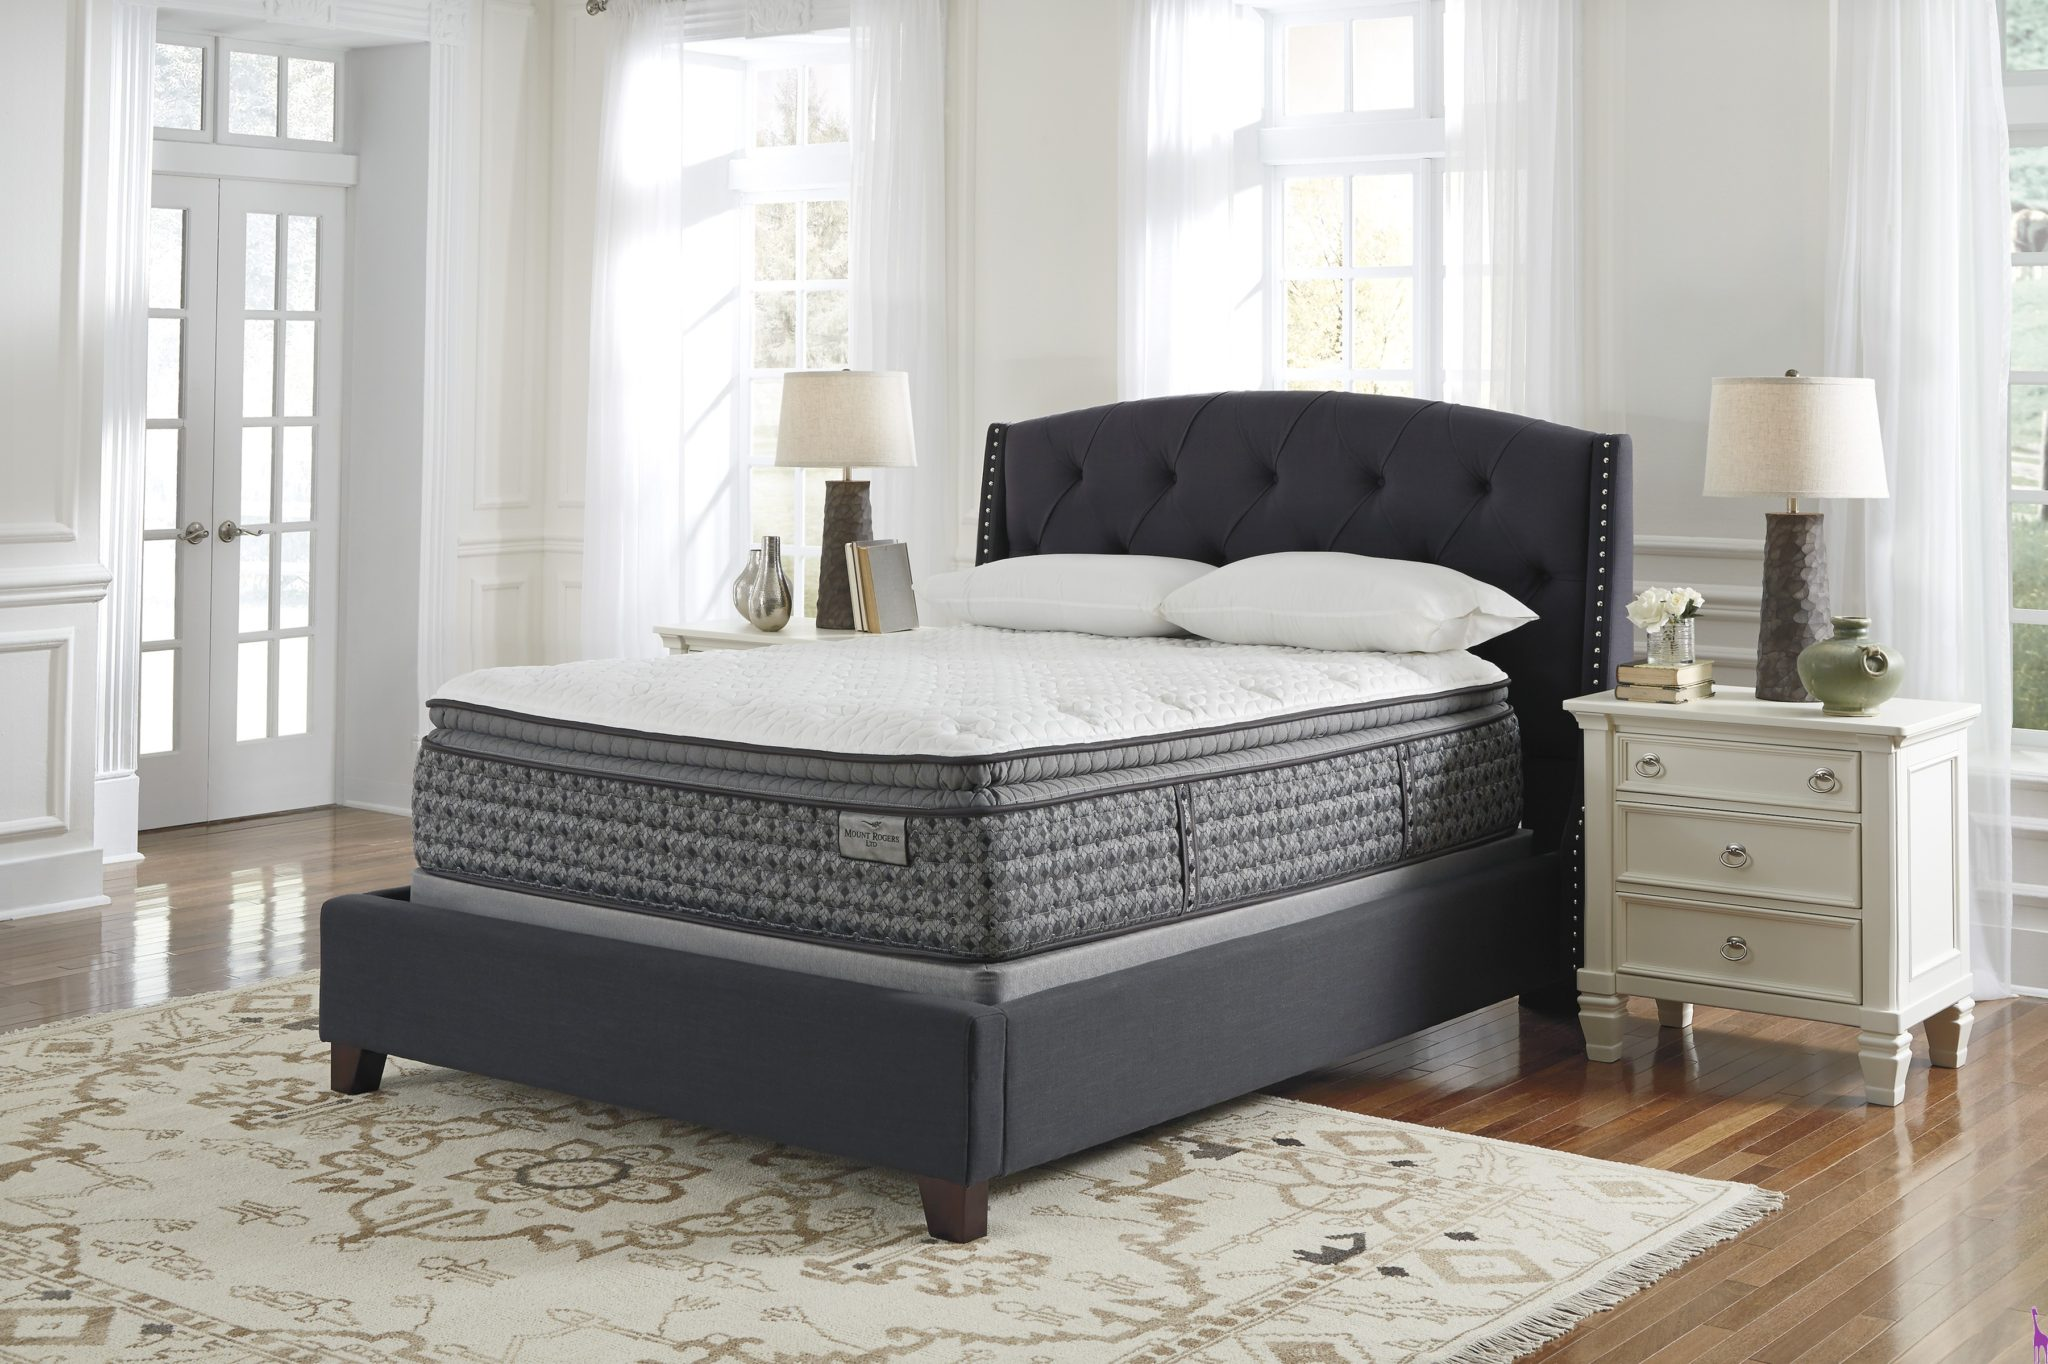 style mattress european to furniture pillow queen serta pin conforms king bed size plush top s the